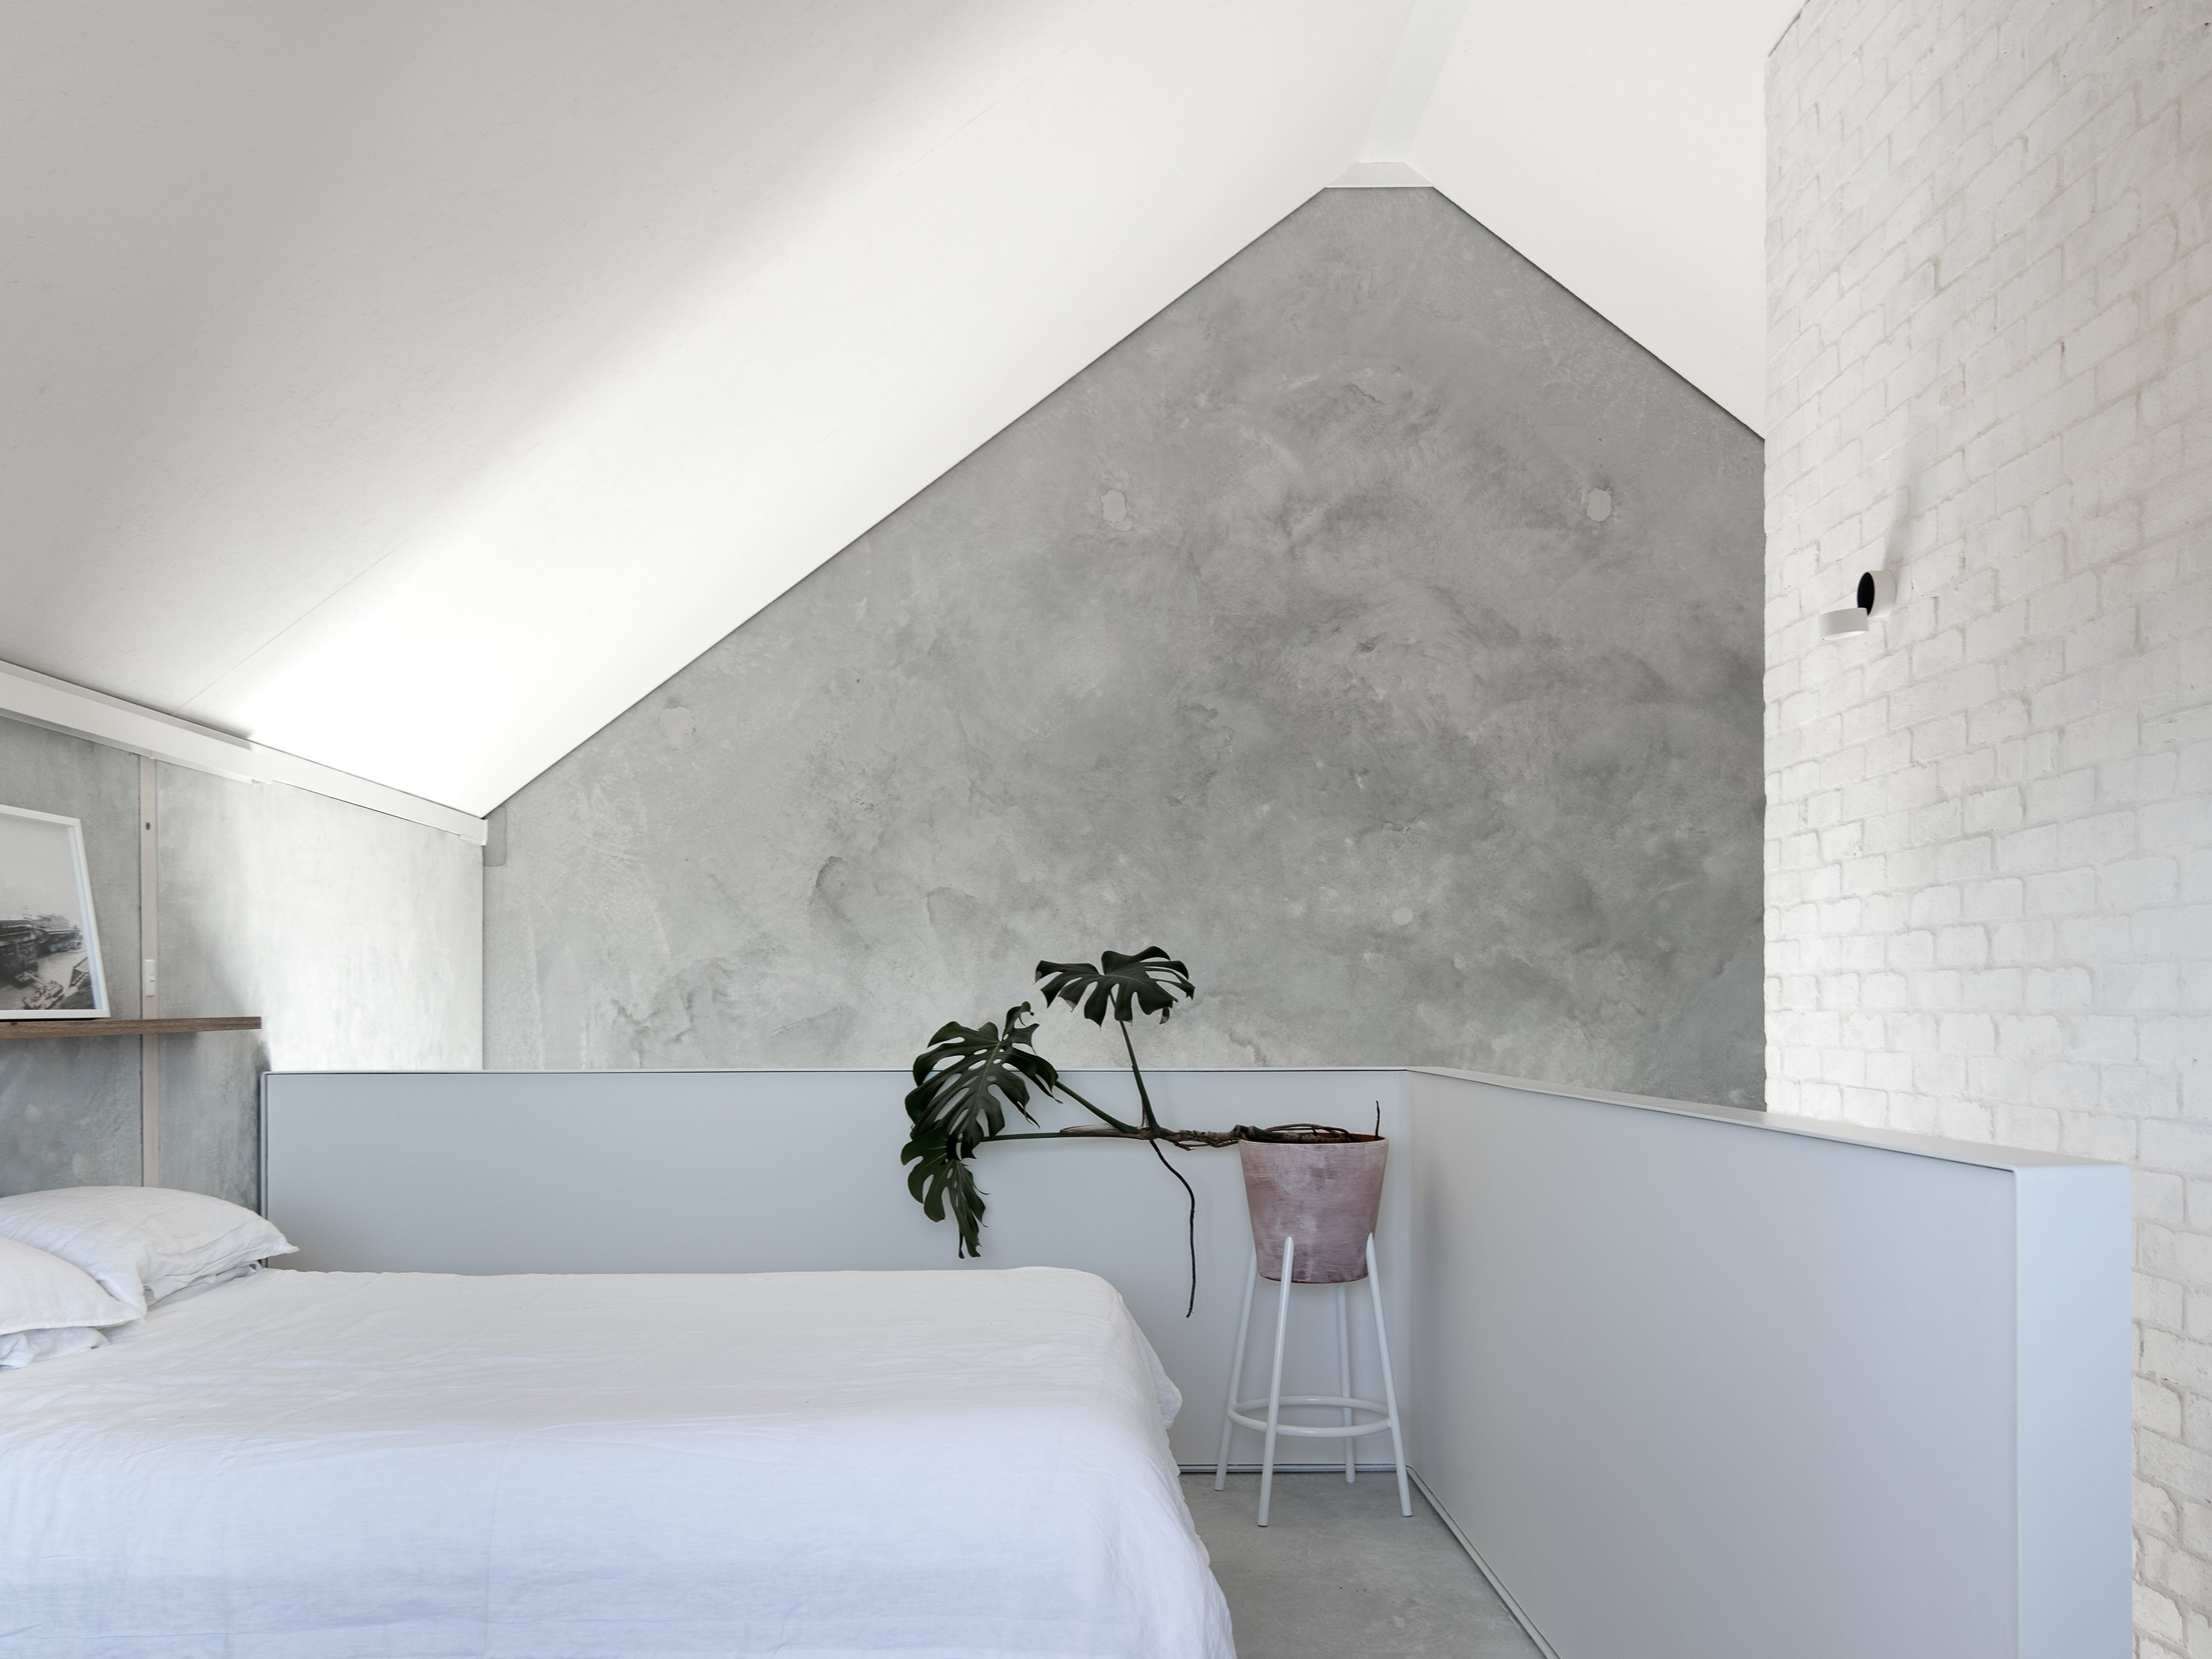 House A By Whispering Smith Local Australian Contemporary Architecture & Interior Design Scarborough, Perth Image 15